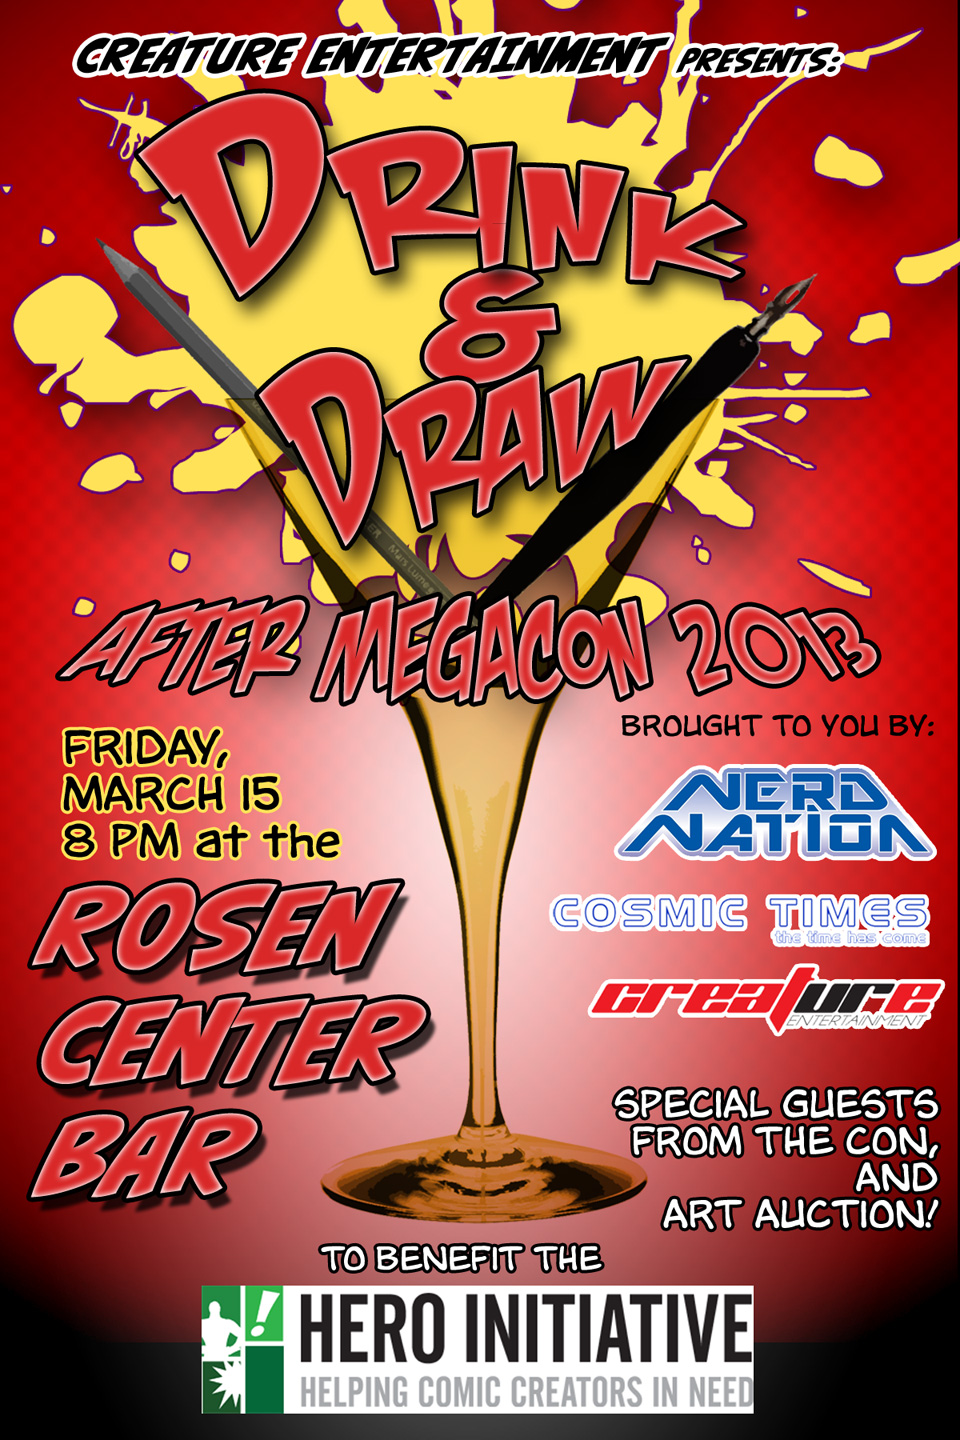 DrinkandDraw2012_Flyrer_FRONT-WEB